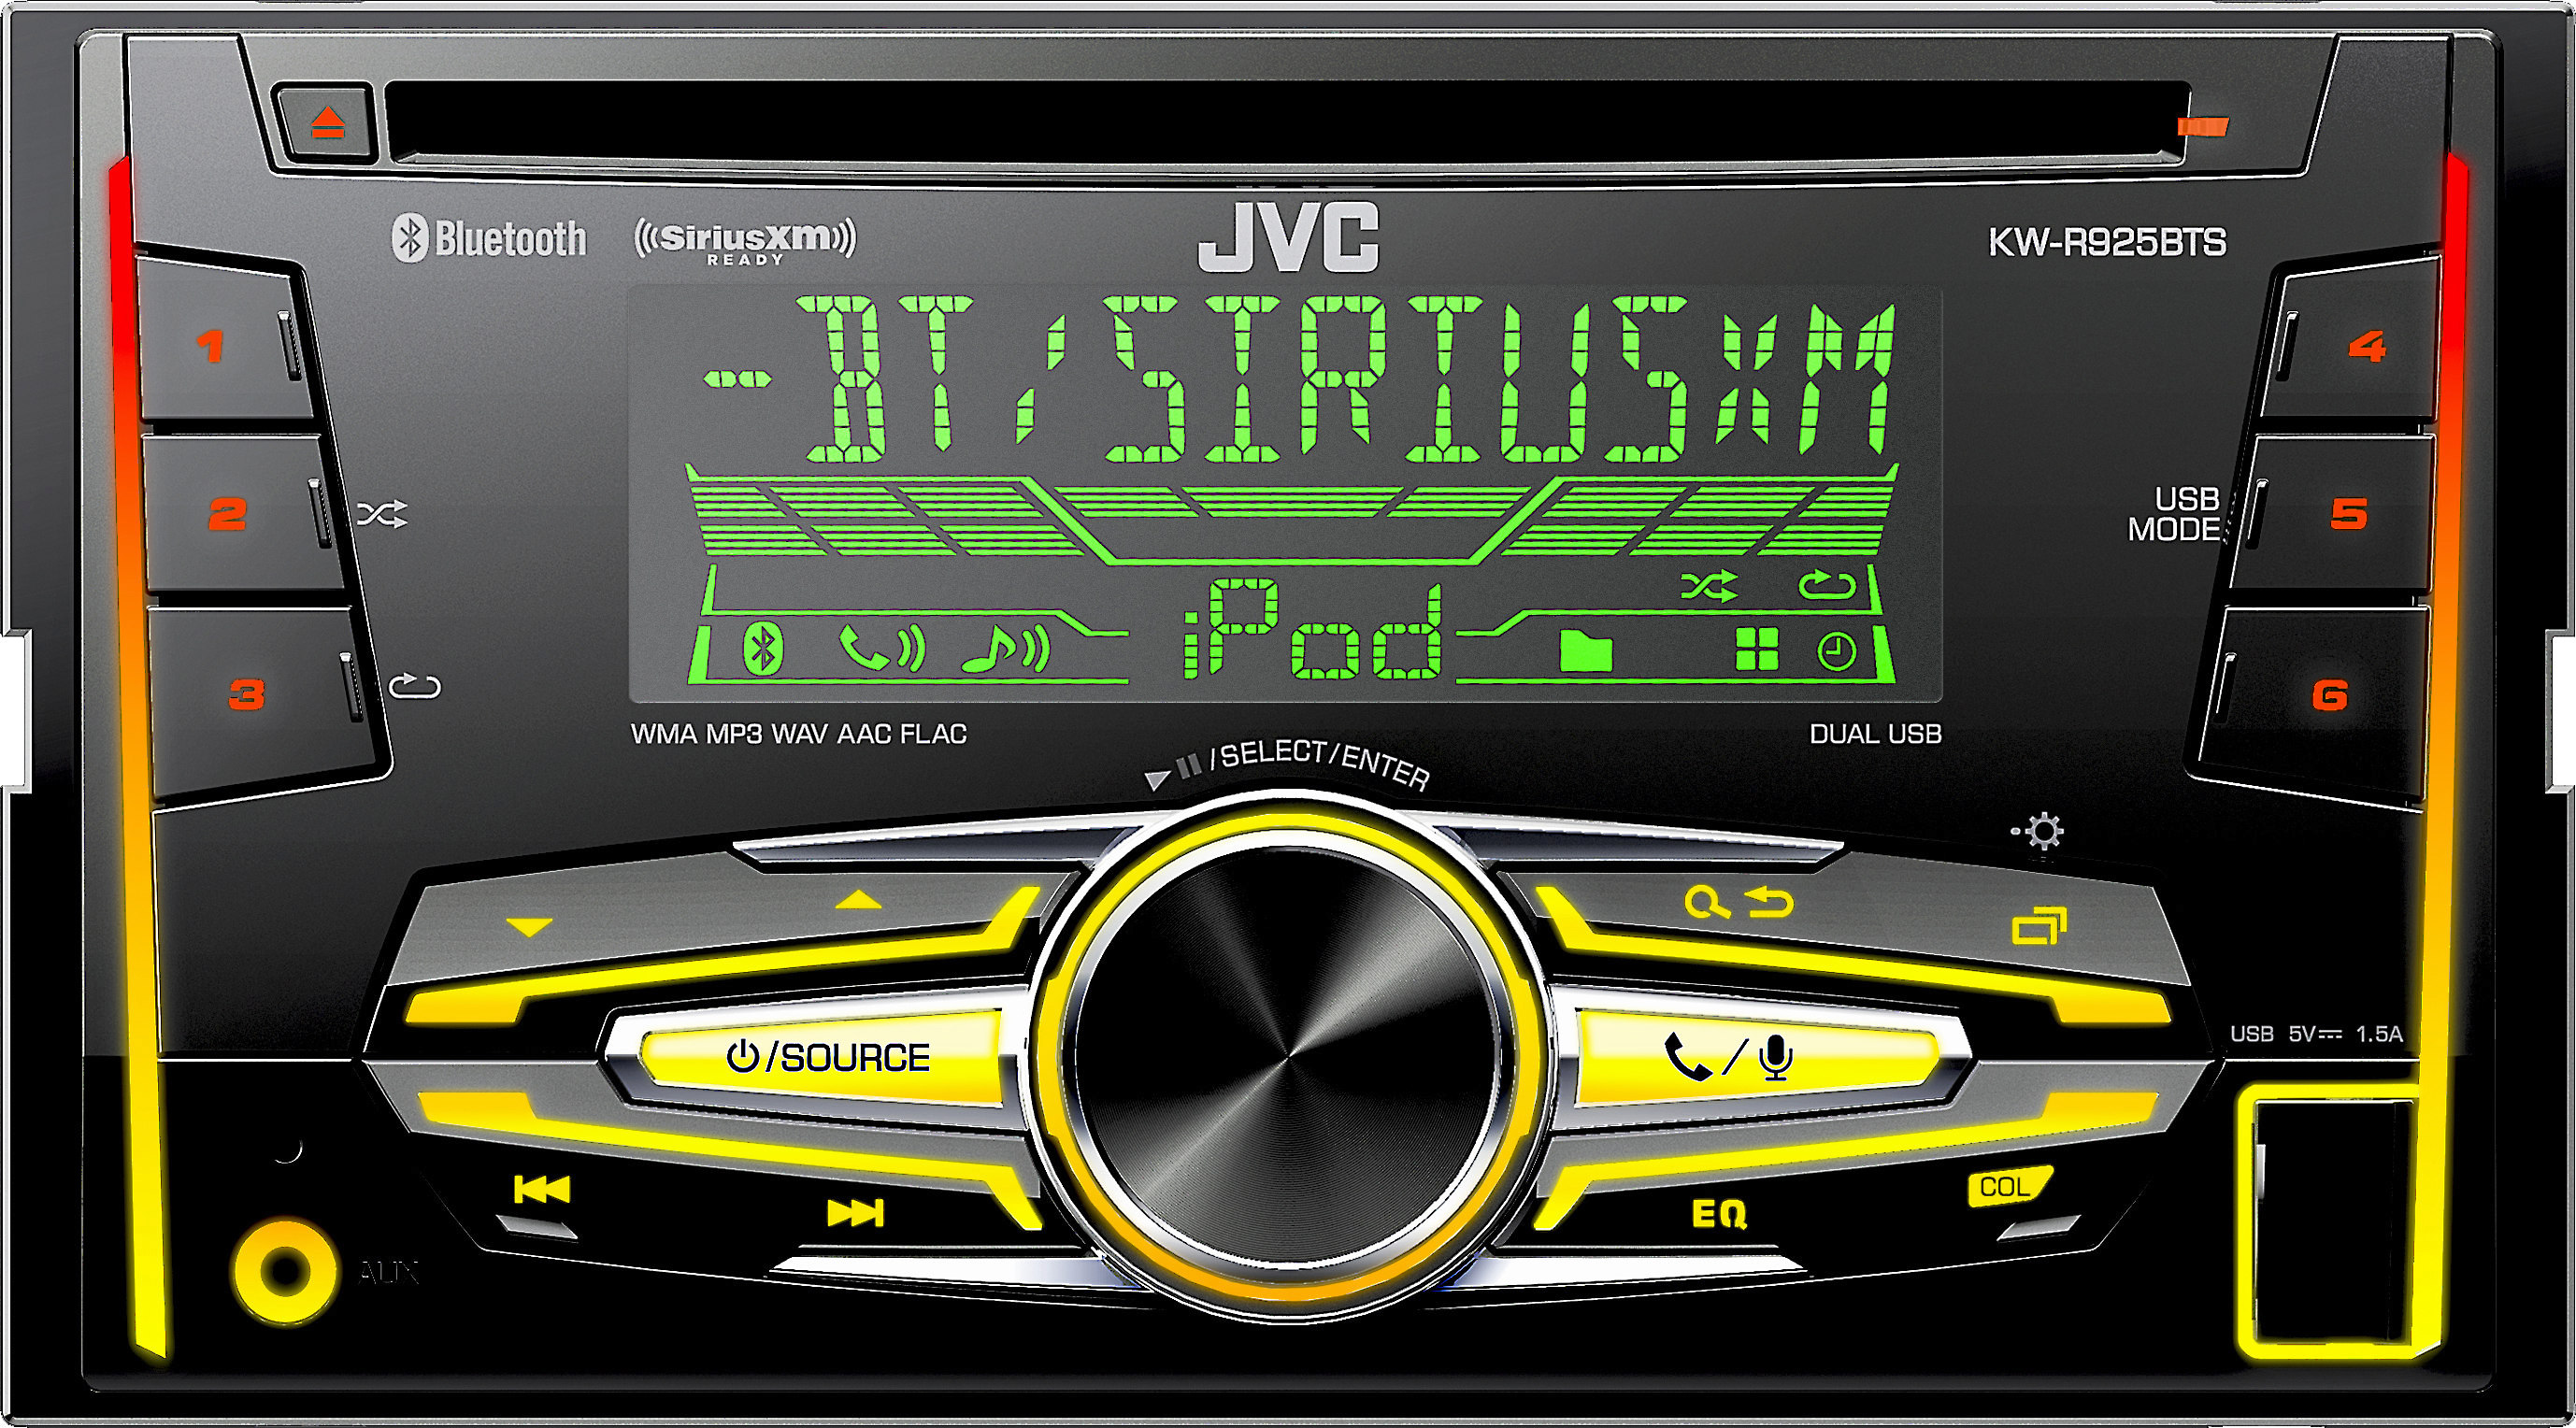 Pleasing Jvc Kw R925Bts Cd Receiver At Crutchfield Com Wiring Cloud Cranvenetmohammedshrineorg